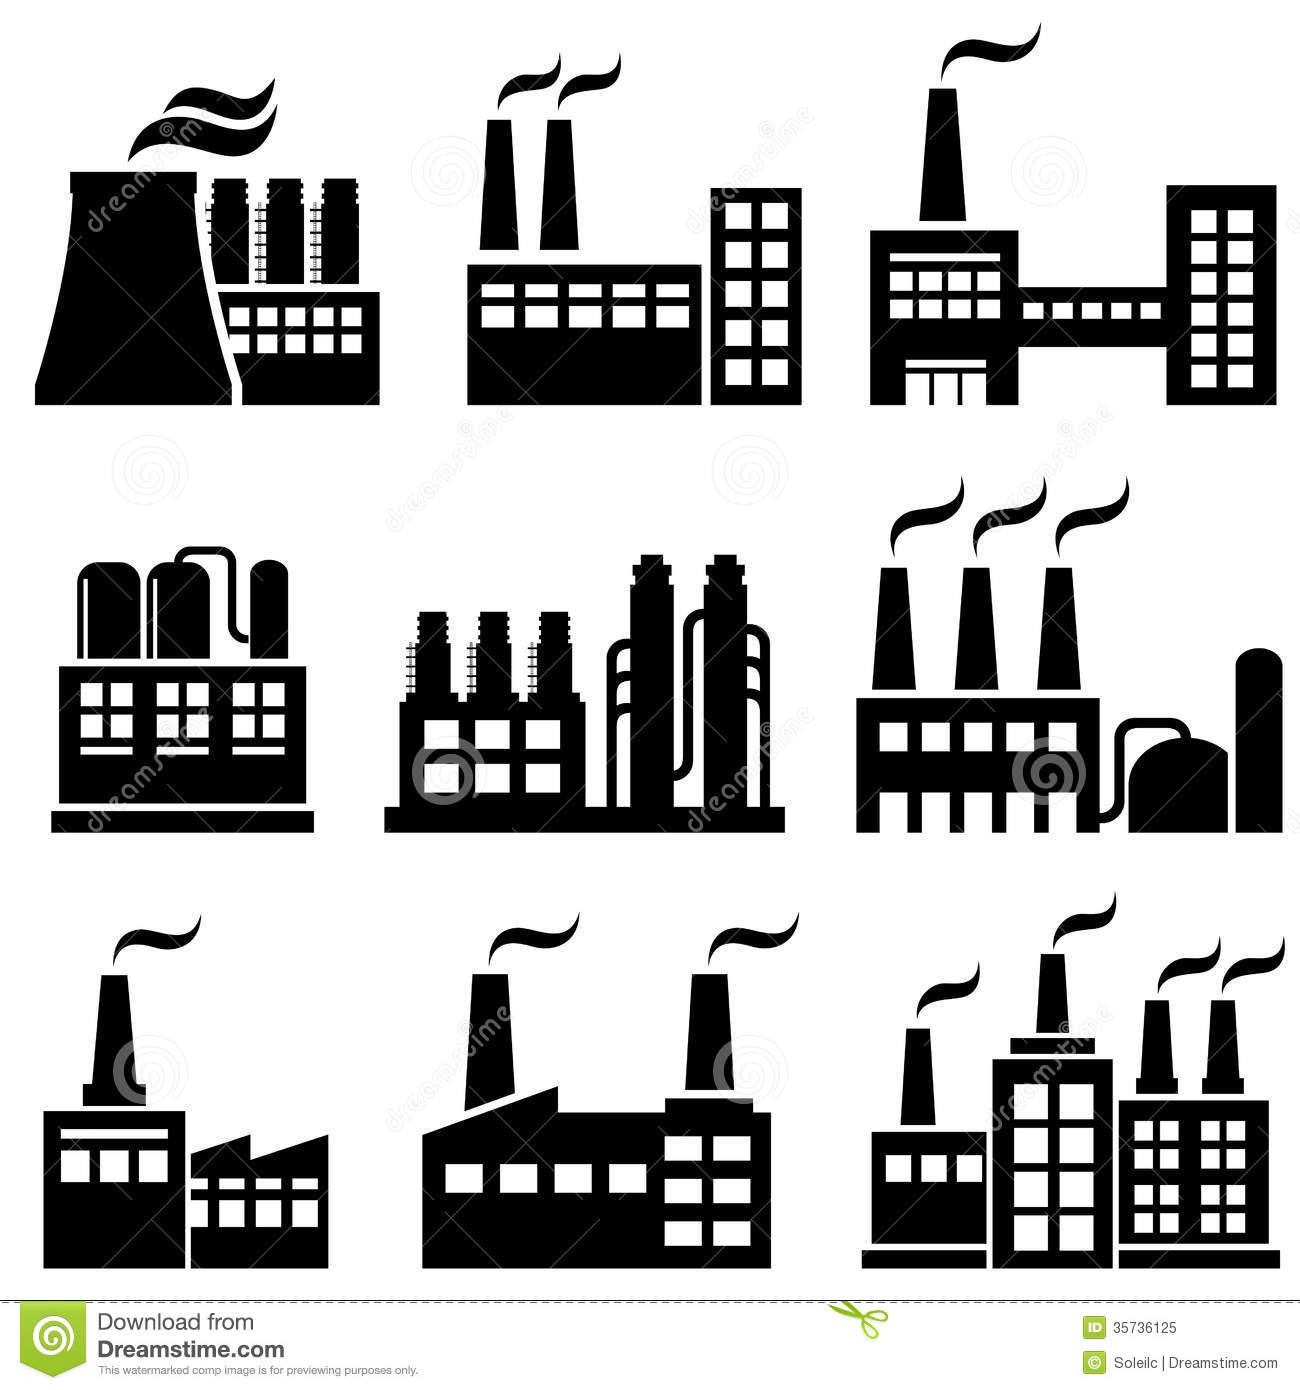 Industrial clipart engineering tool Clipart Panda Free Clipart industry%20clipart